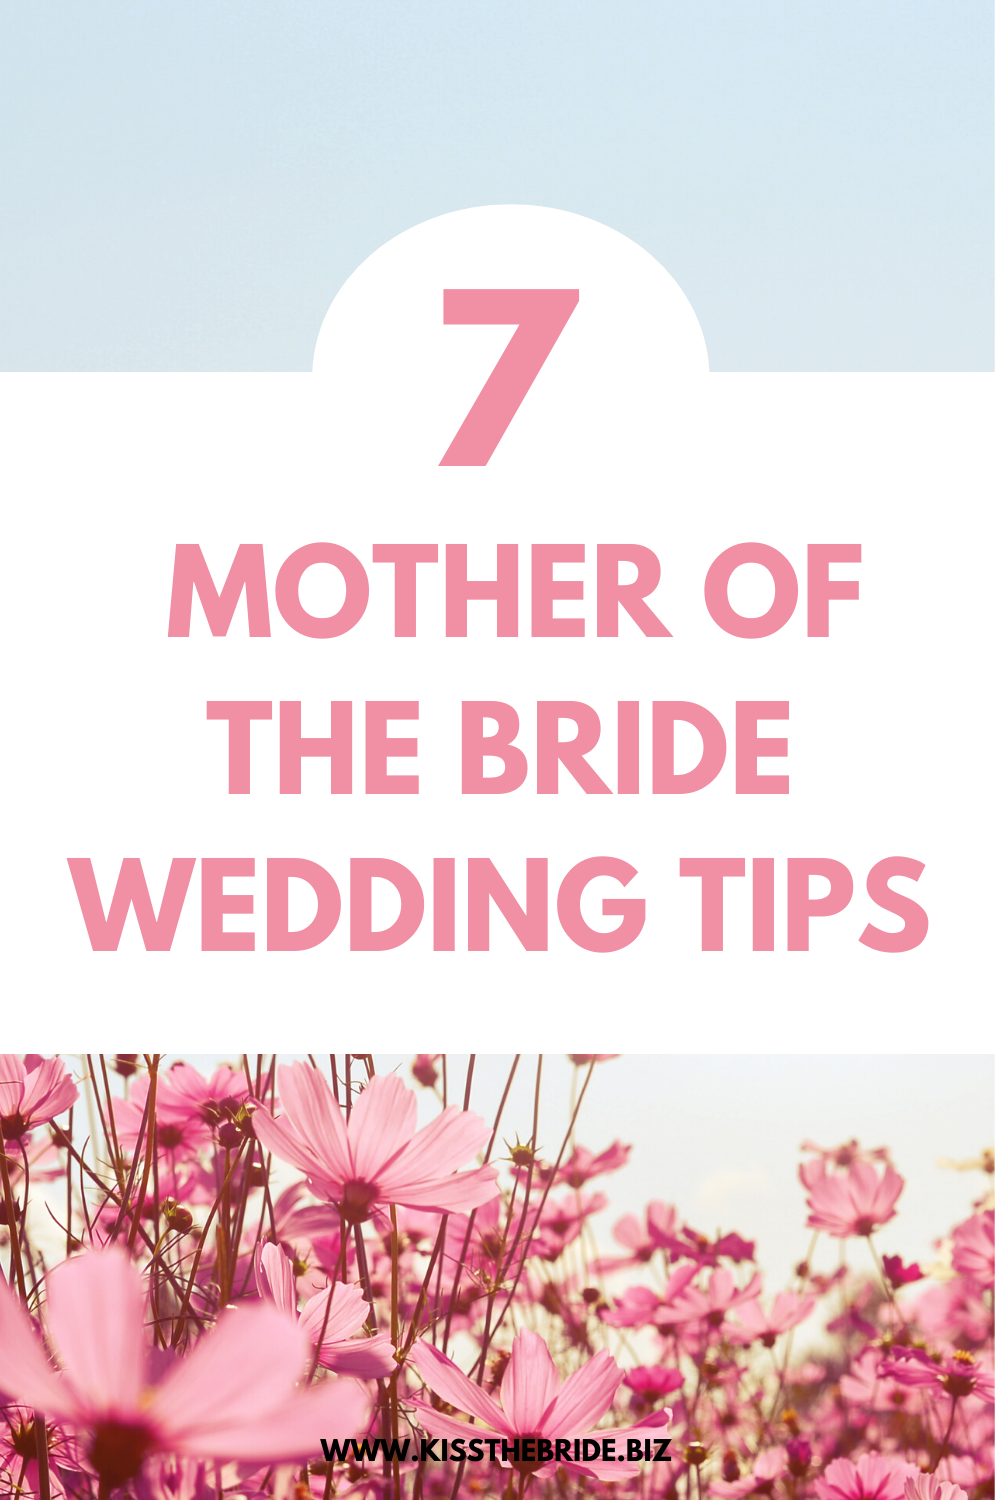 Mother of the Bride Tips and advice